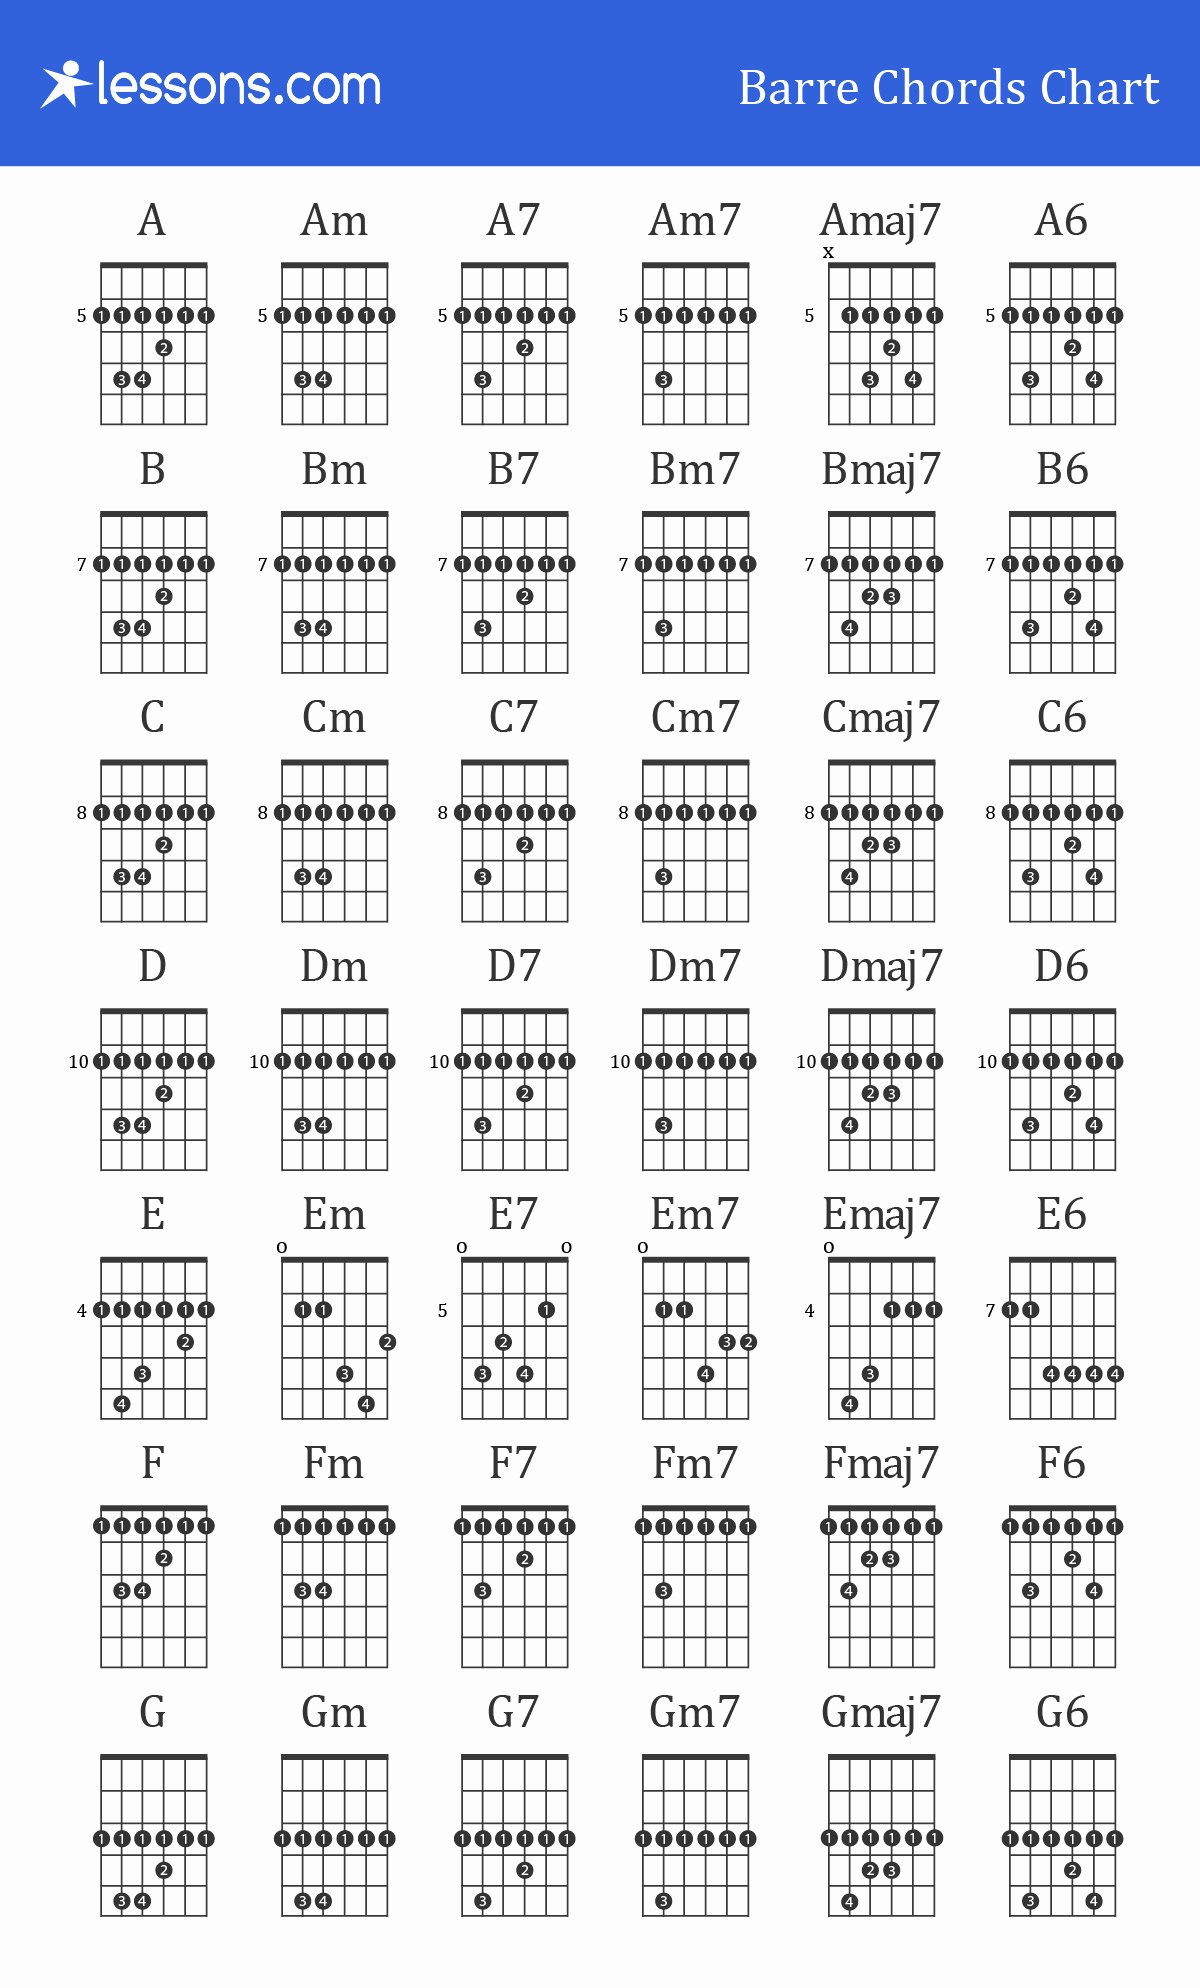 Bar Chords Guitar Chart New Guitar Barre Chords for Beginners How to Charts & Examples